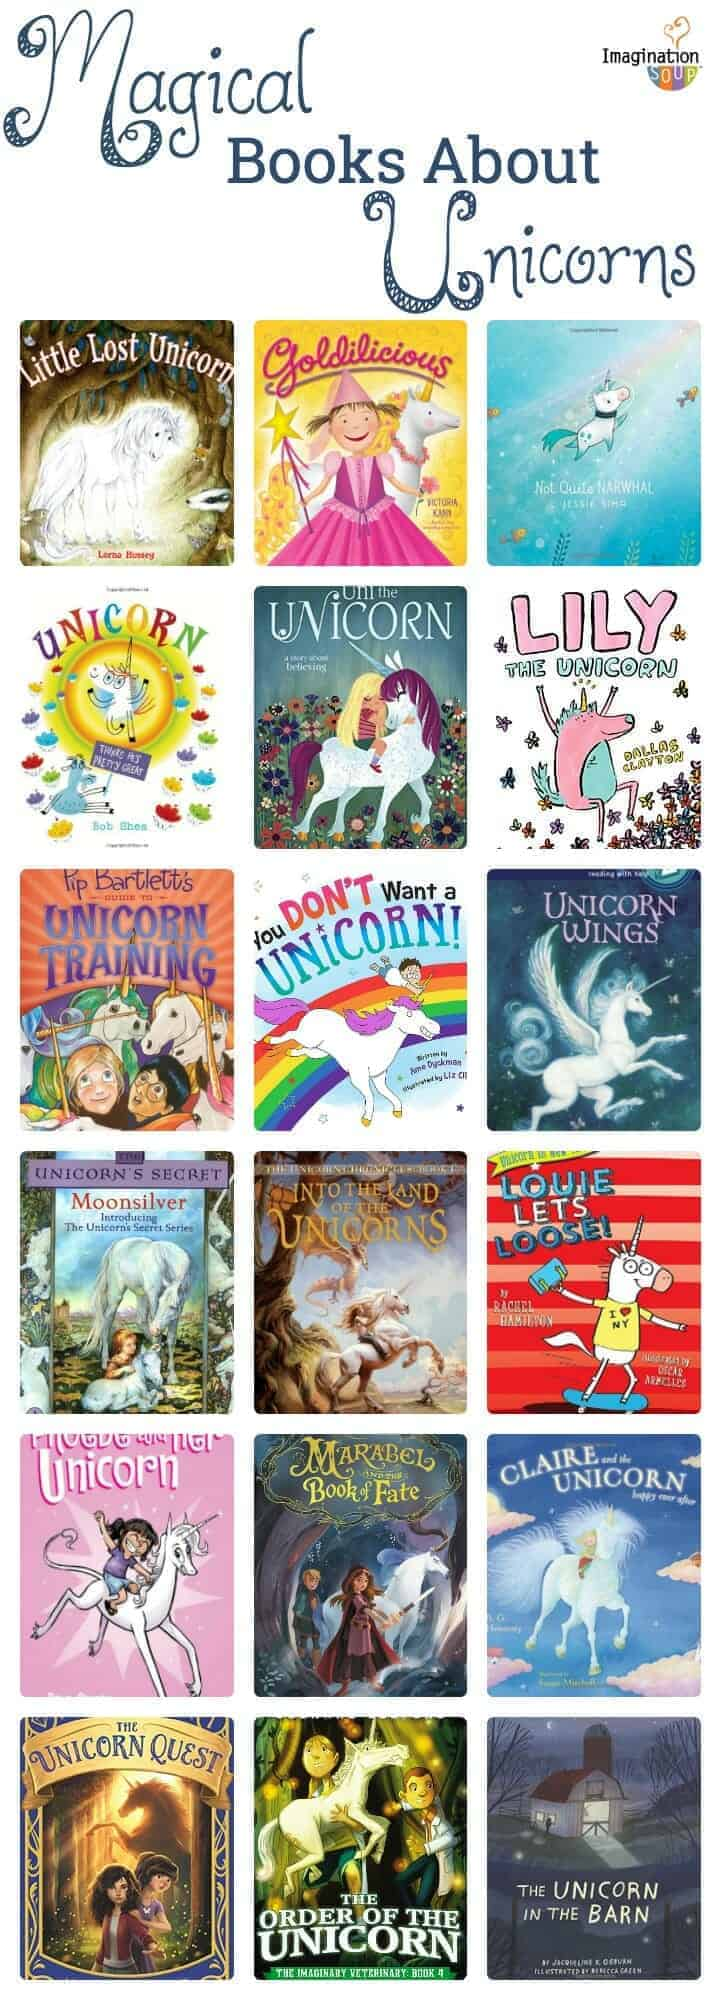 magical children's books about unicorns